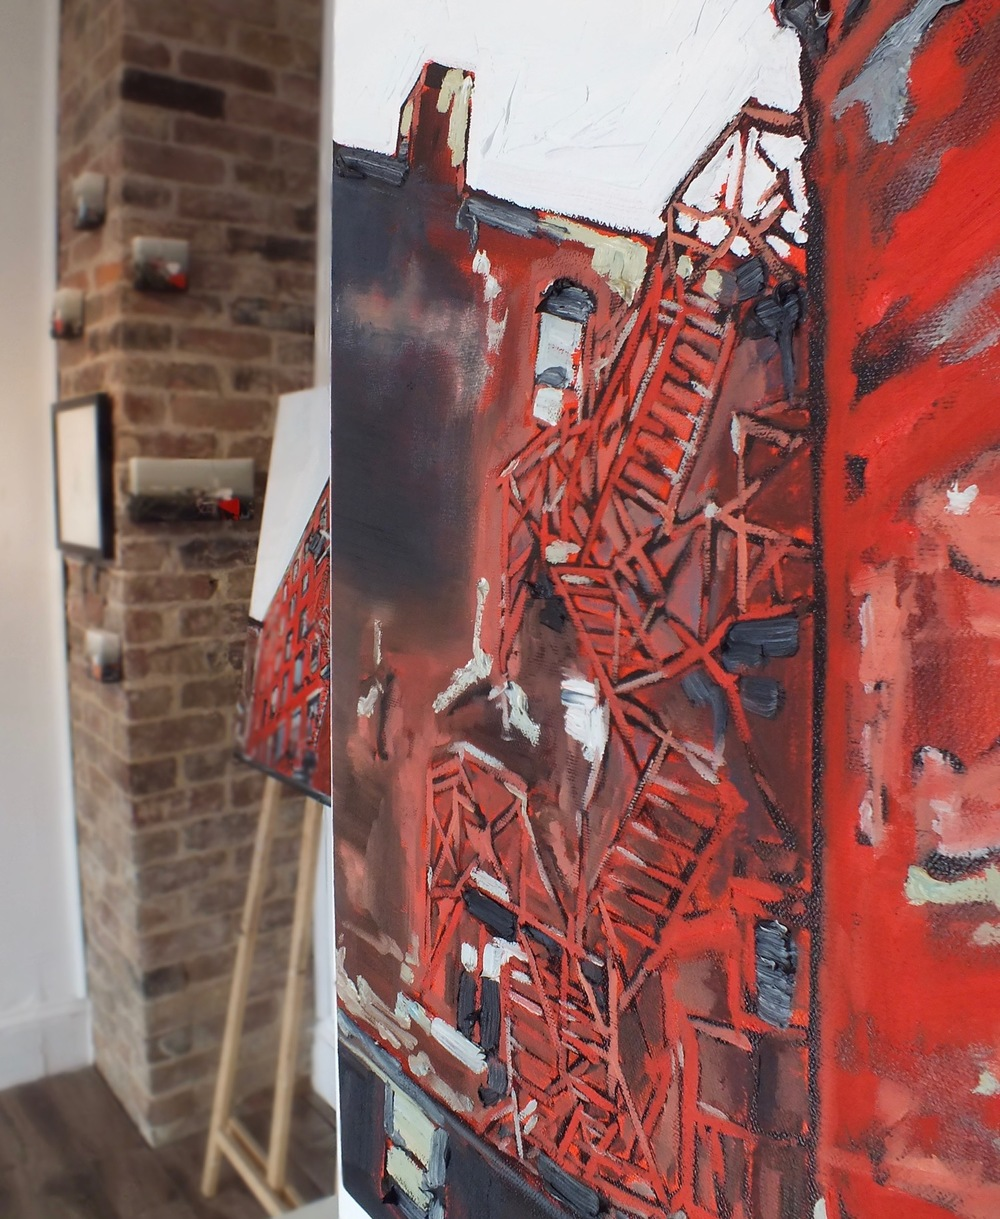 A peek at one of the newly arrived and freshly painted works for the weekend. A fire escape on Prince William Street.